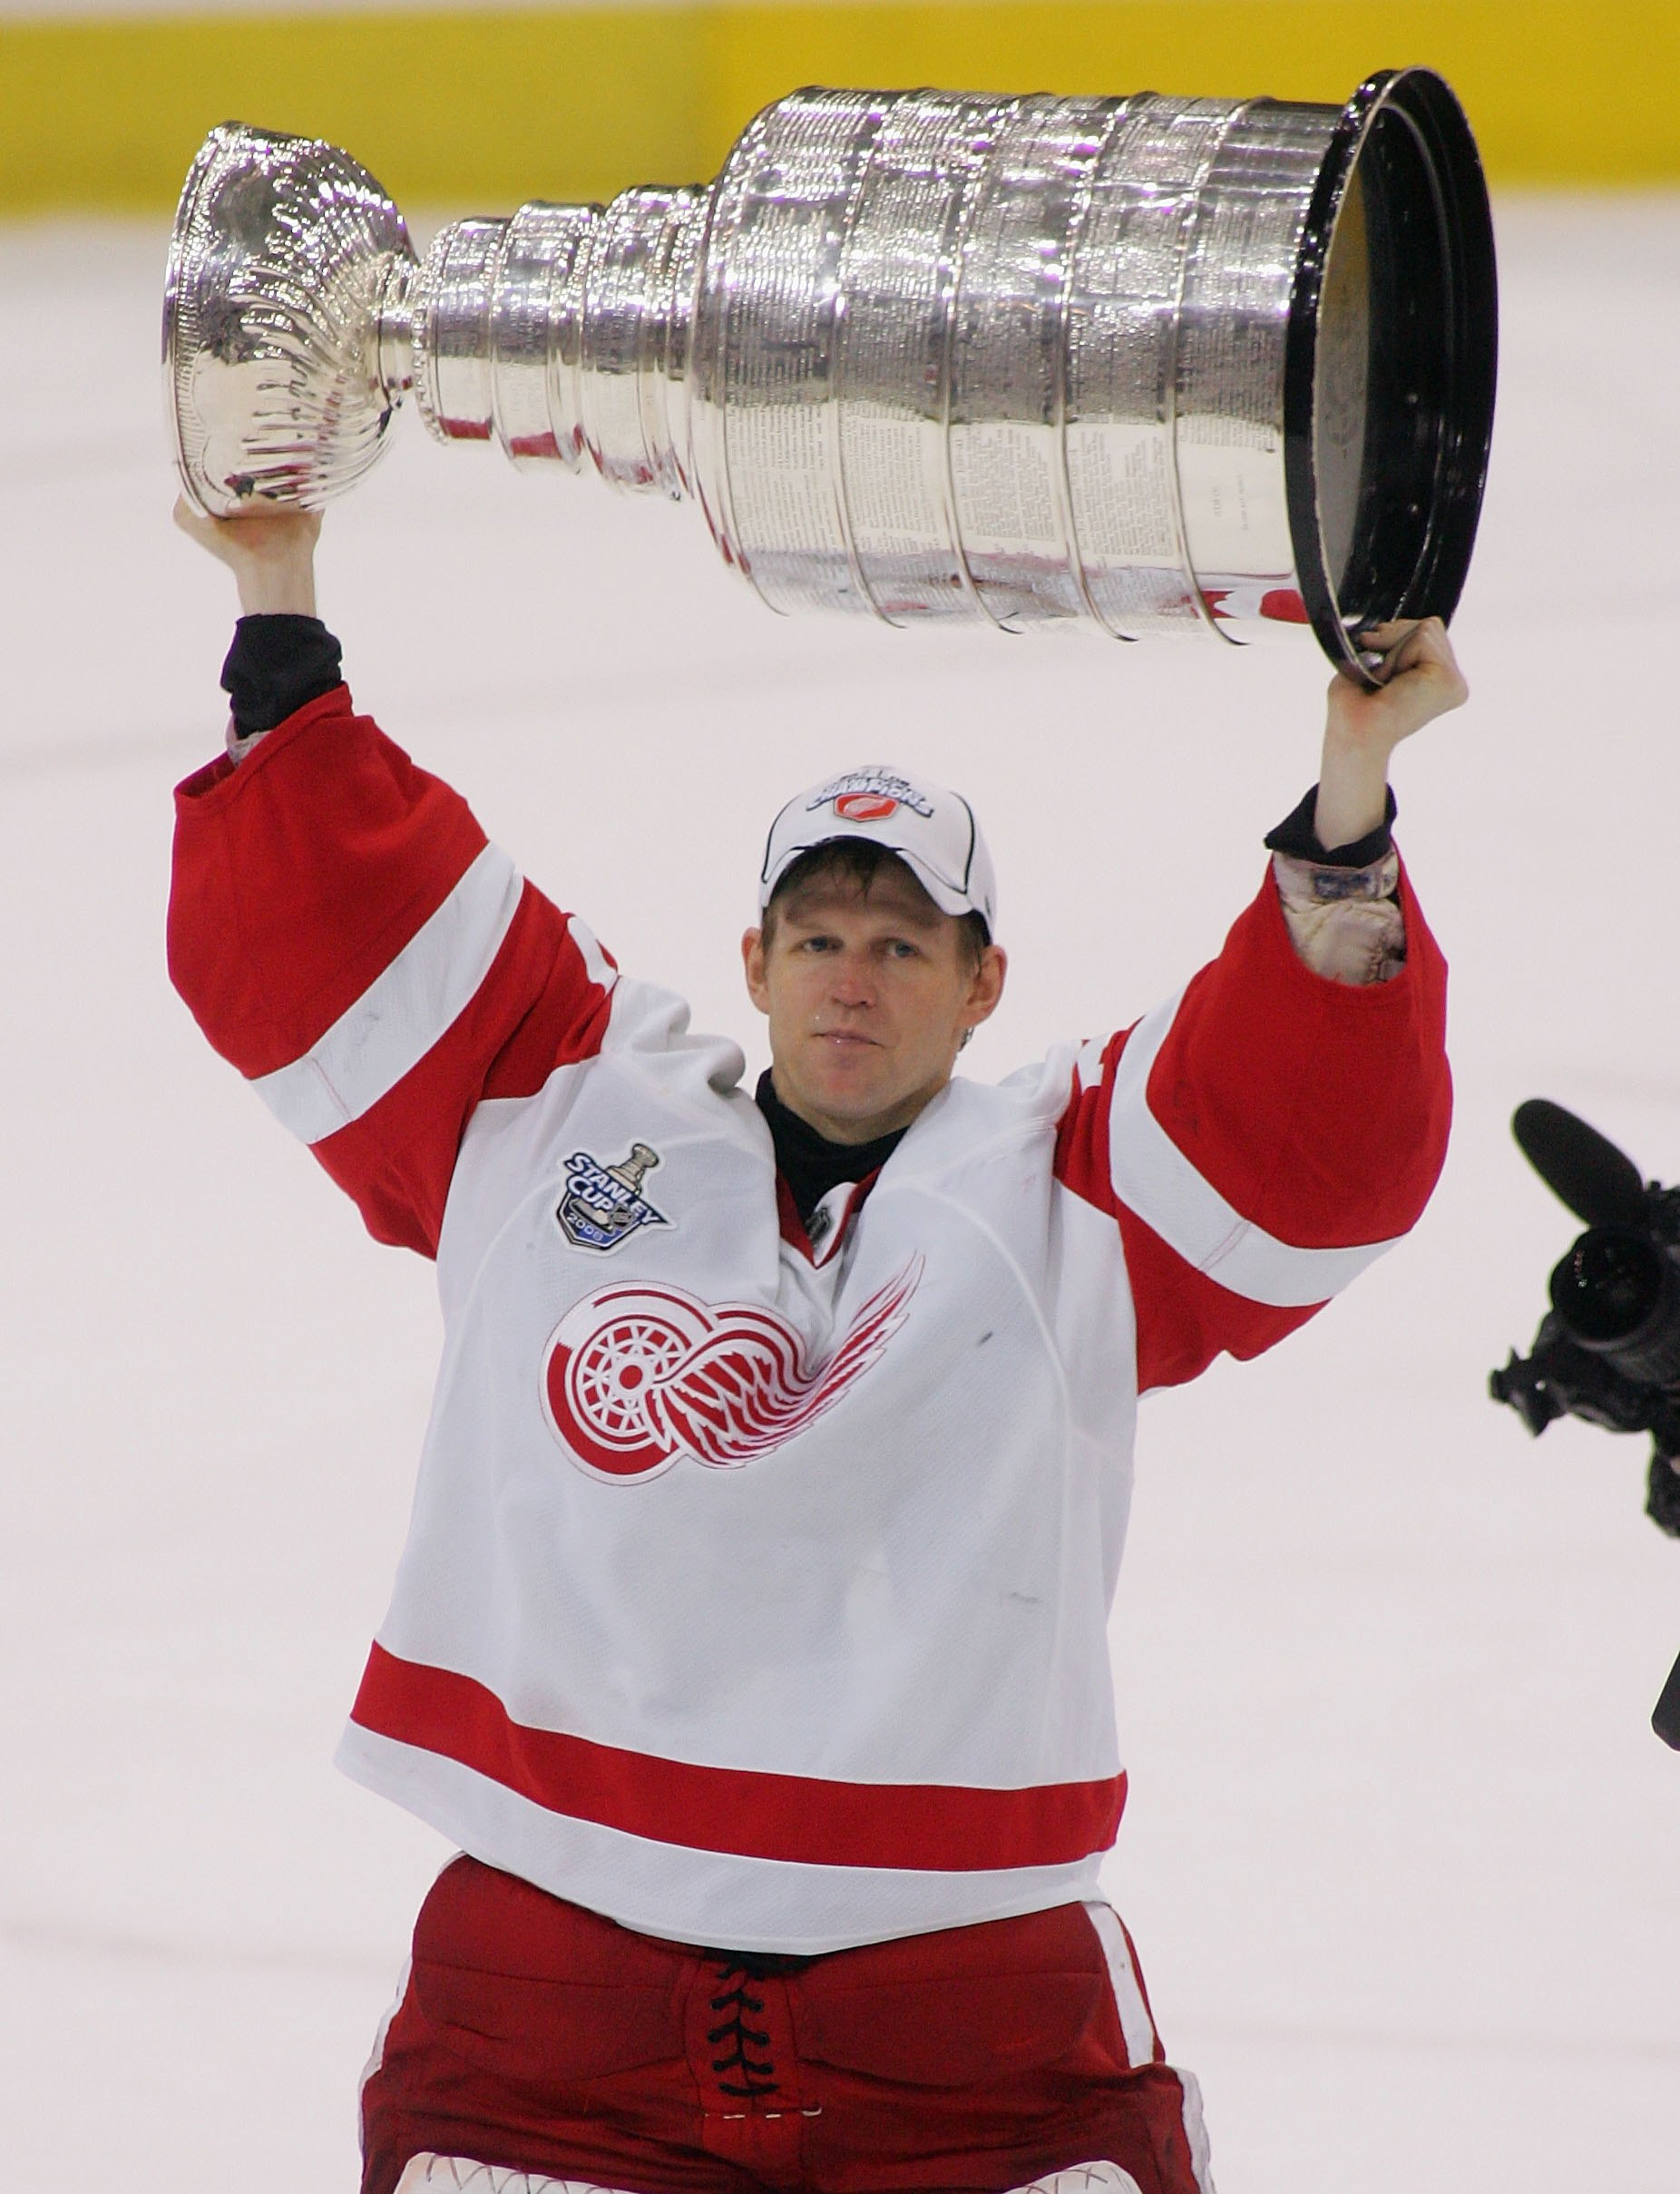 PITTSBURGH - JUNE 04:  Chris Osgood #30 of the Detroit Red Wings celebrates with the Stanley Cup after defeating the Pittsburgh Penguins in game six of the 2008 NHL Stanley Cup Finals at Mellon Arena on June 4, 2008 in Pittsburgh. Pennsylvania. The Red Wi